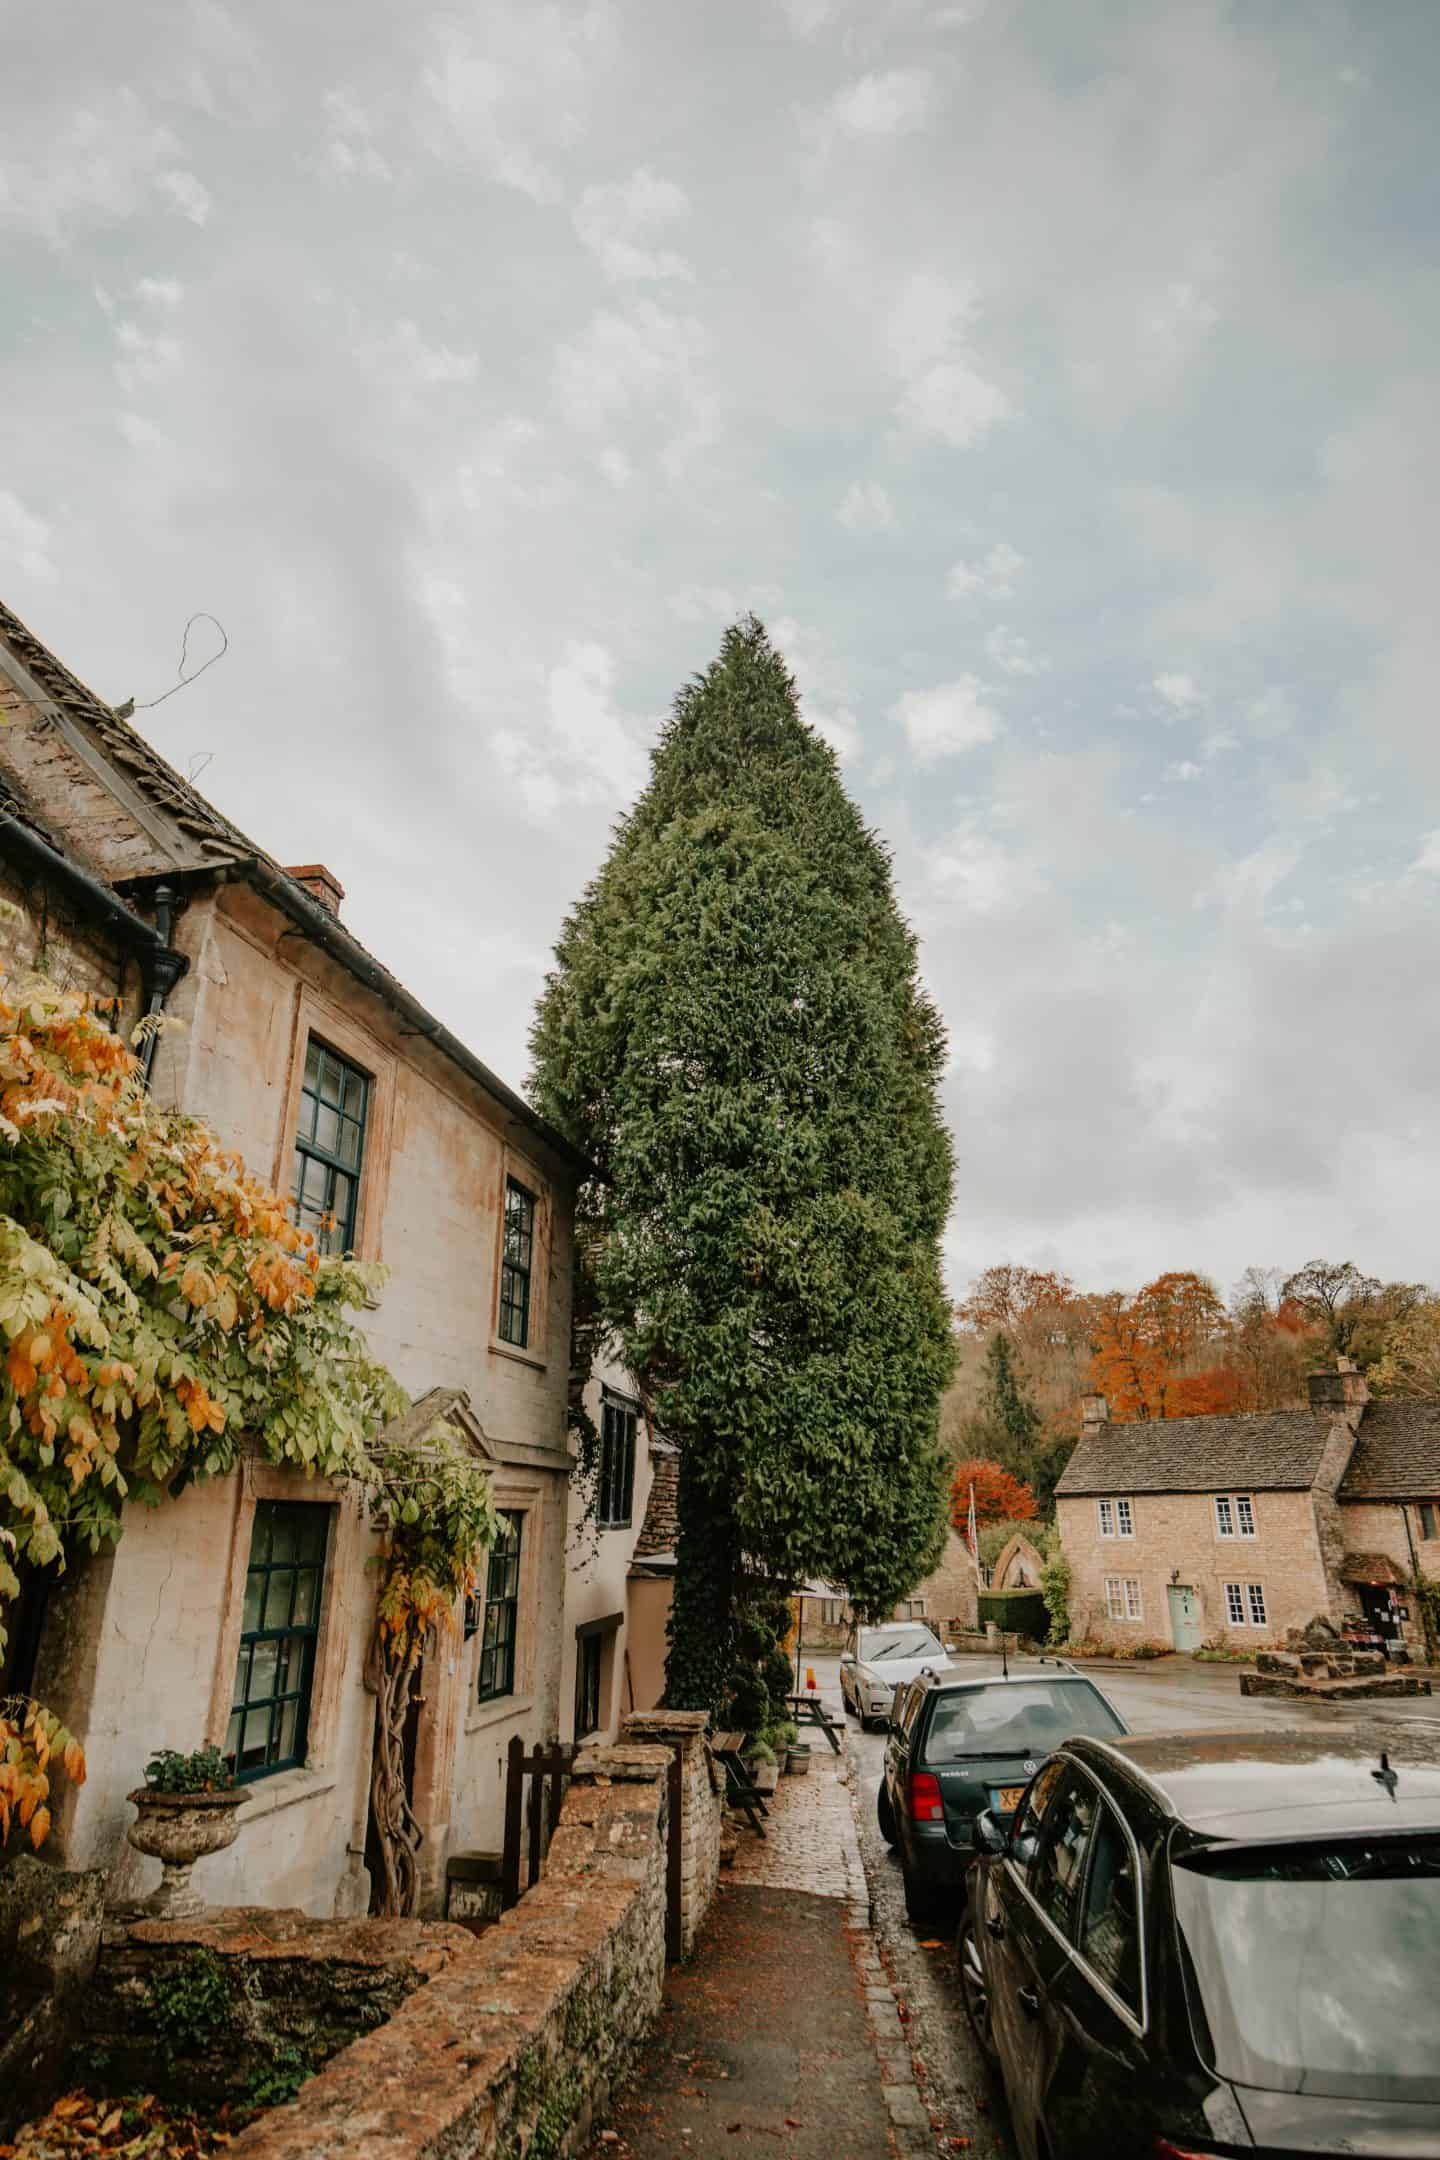 How to Get To Cotswolds